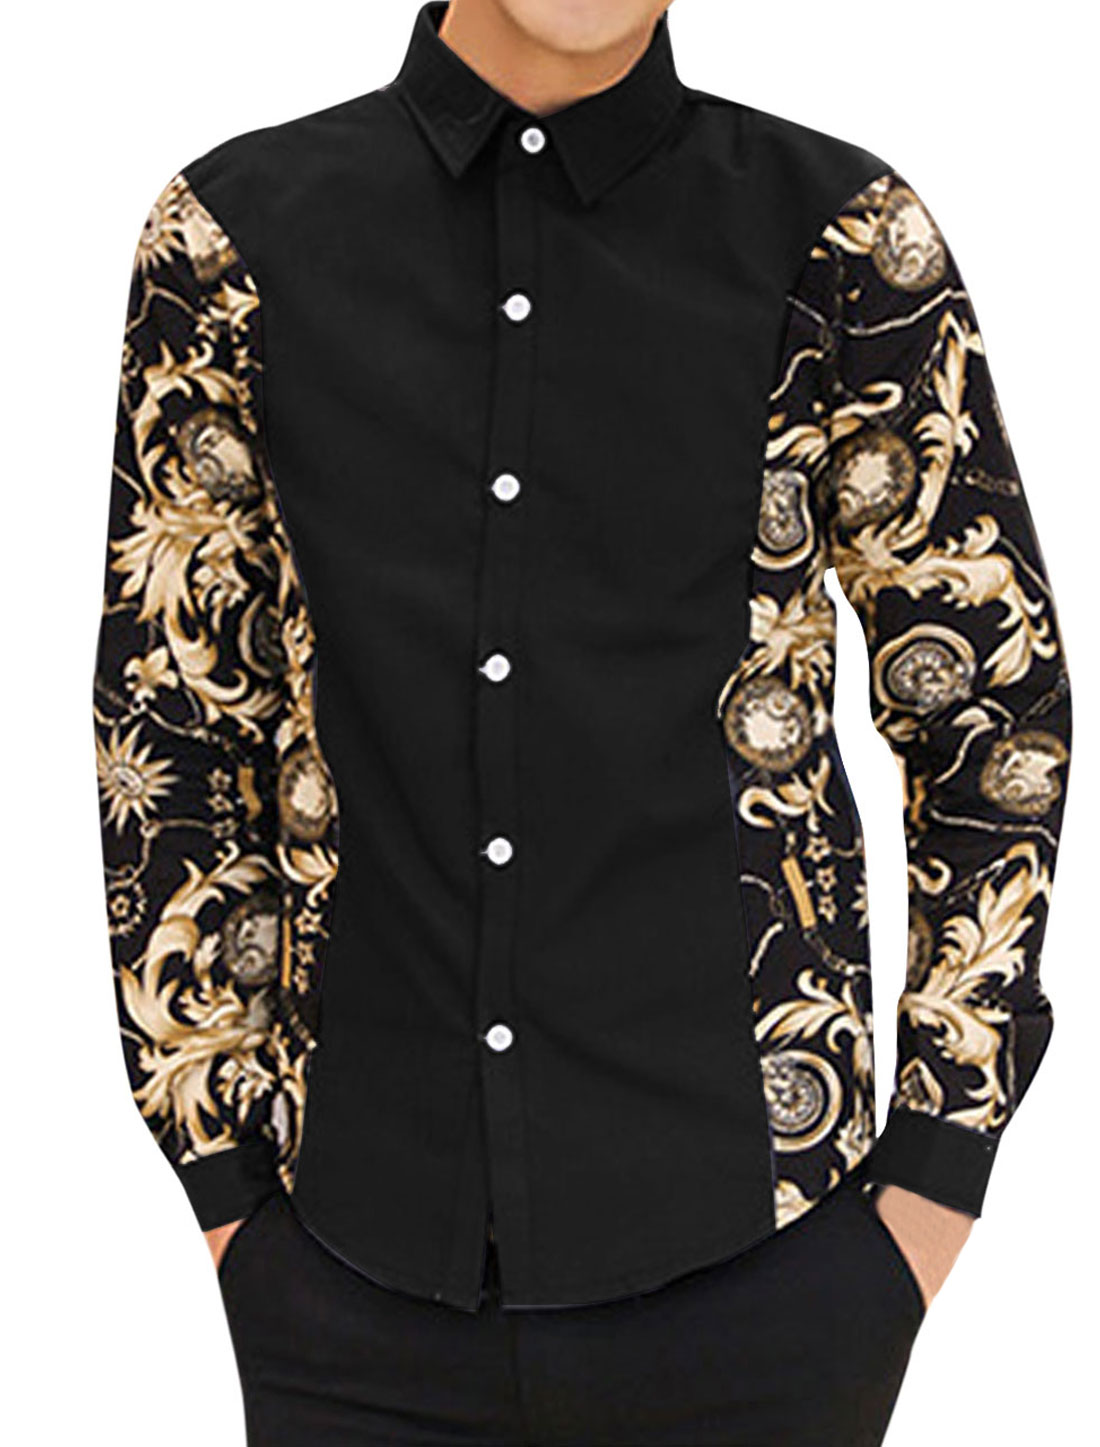 Men Contrast Floral Pocket Watch Print Contrast Sleeves Stylish Shirt Black M